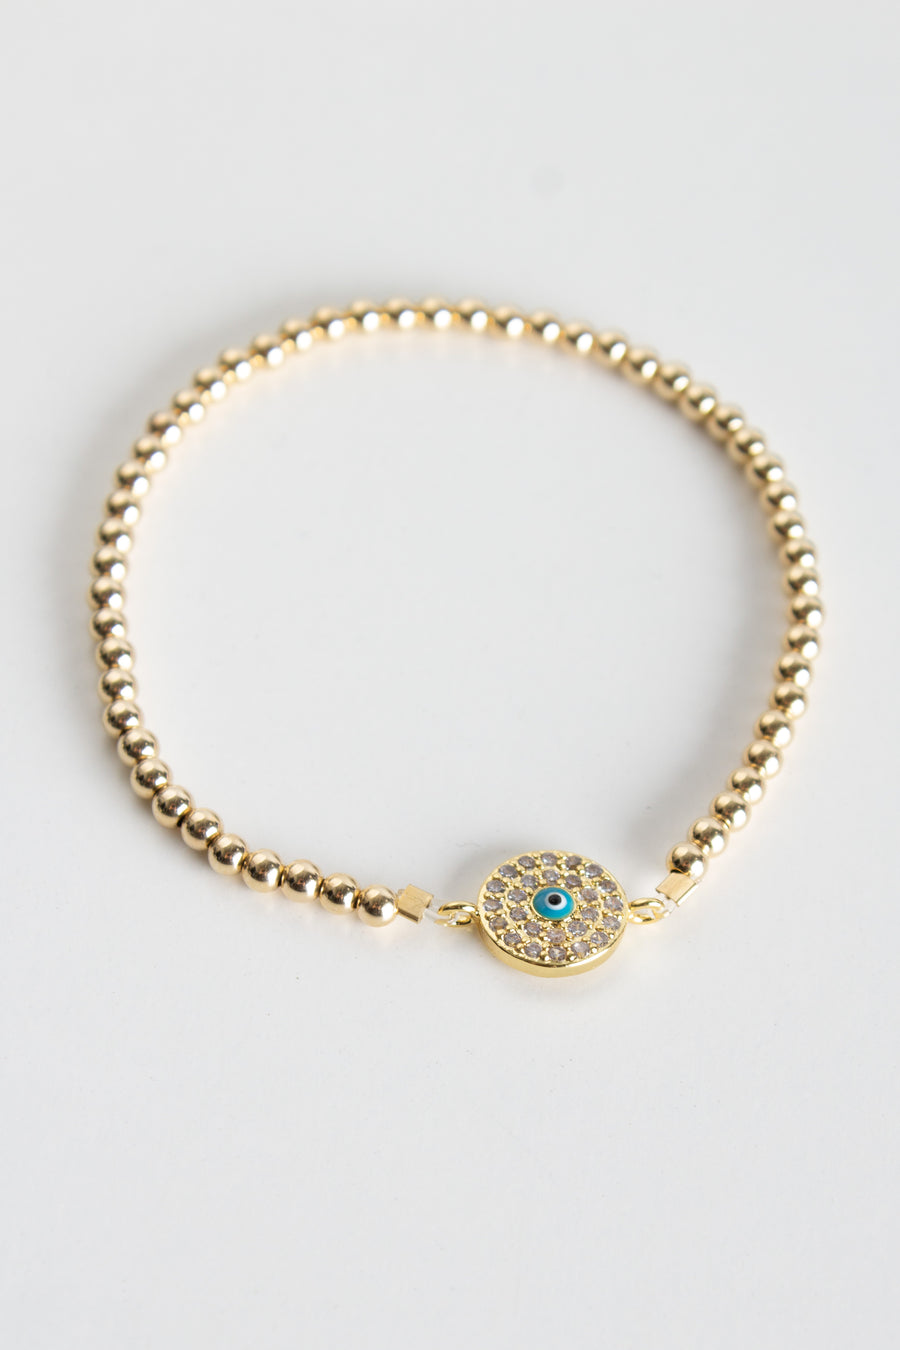 Beaded Stretch Bracelet - Evil Eye Disc - Pavilion